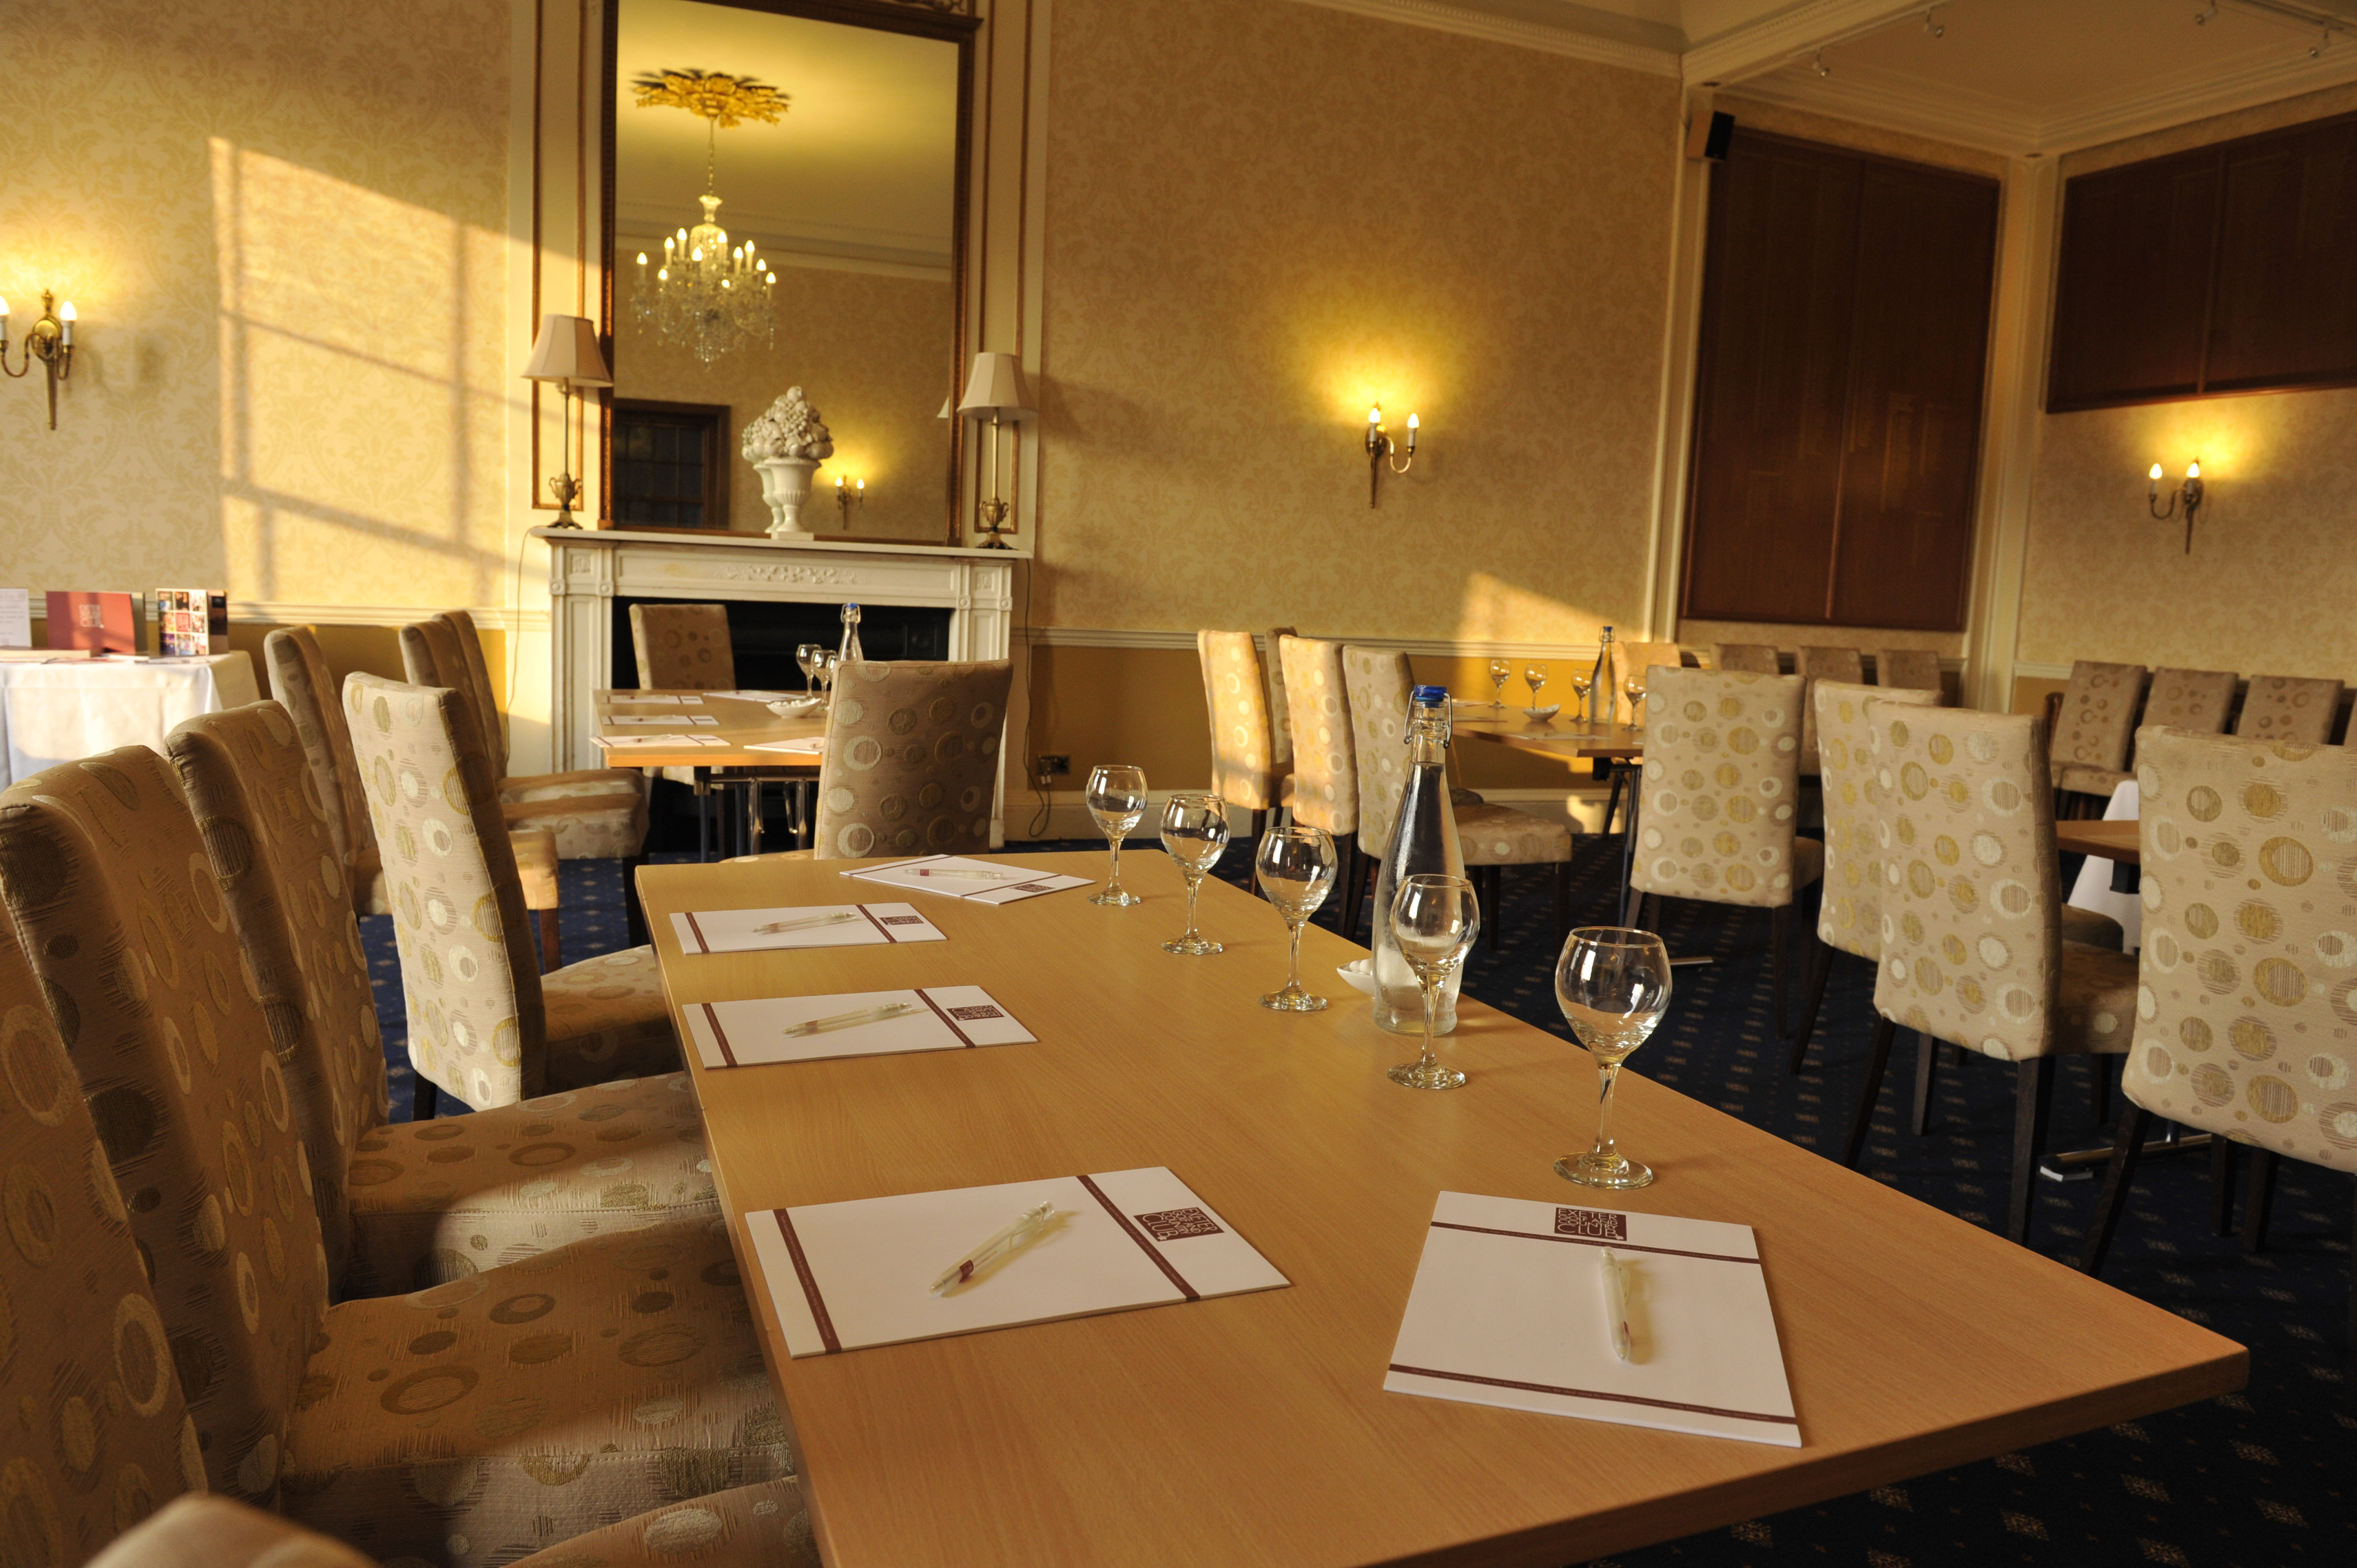 topsham room, exeter golf and country club